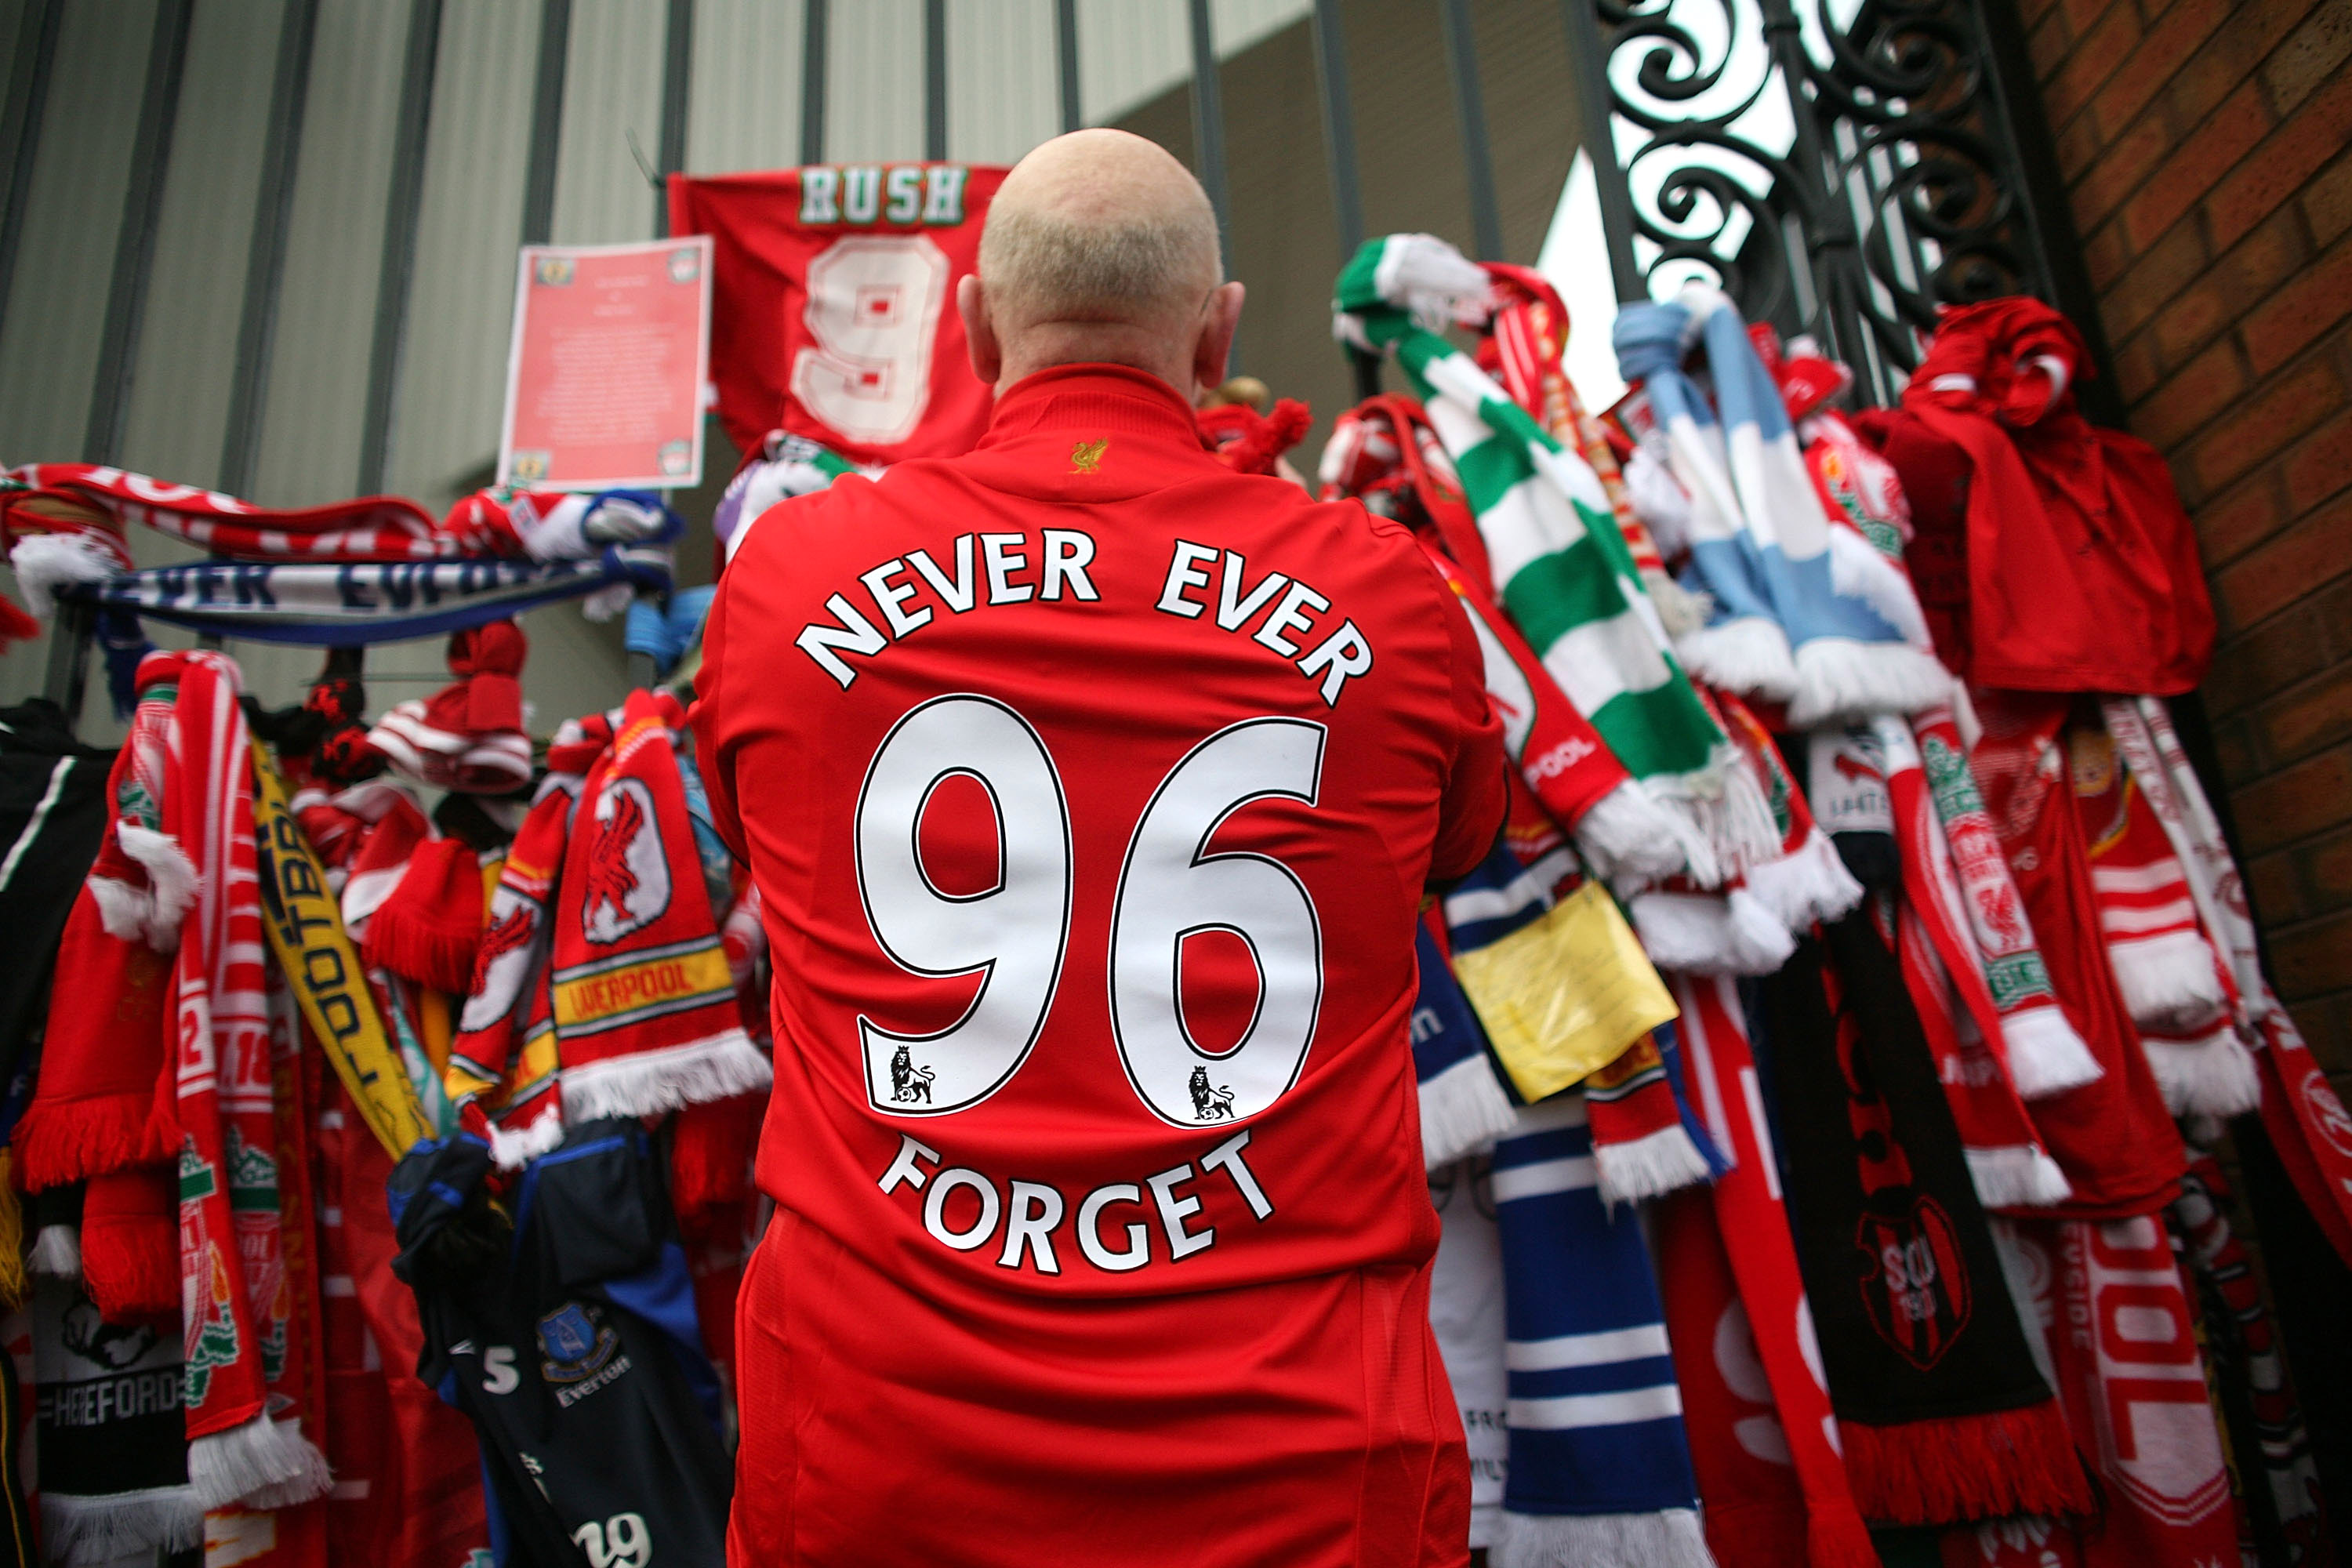 South Yorkshire Police Chief Suspended Over Hillsborough Response GettyImages 85987120